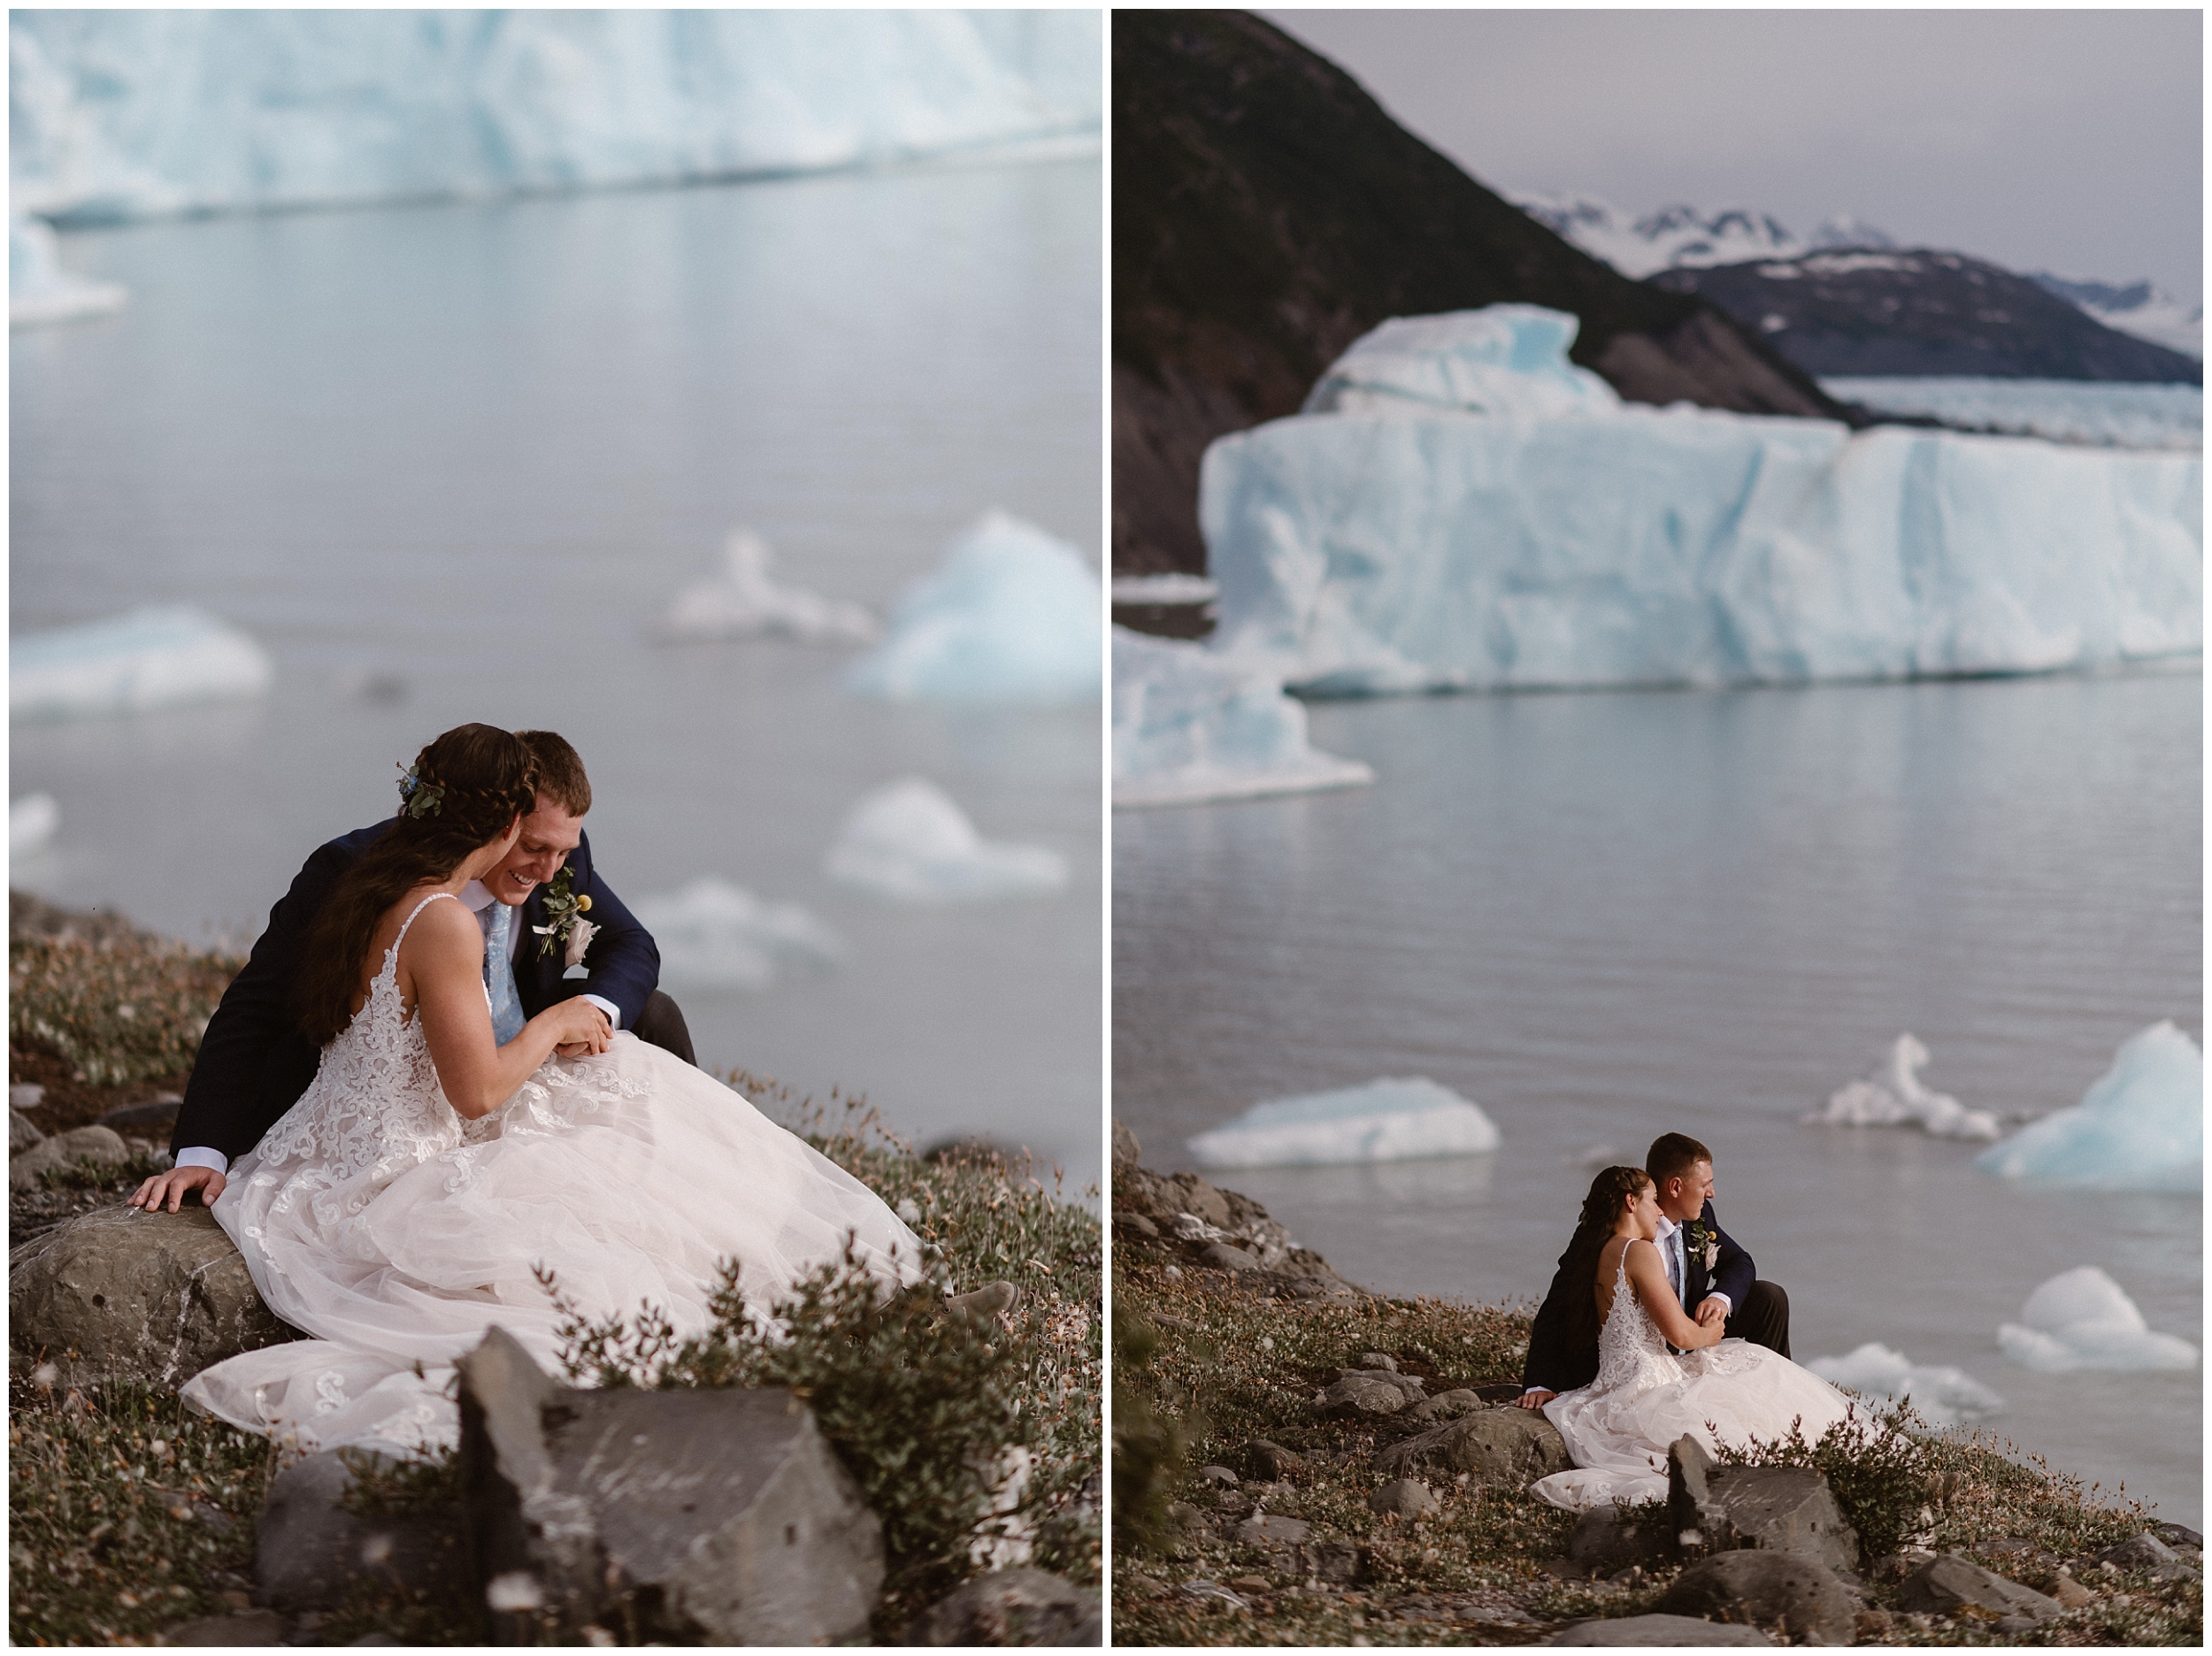 These side-by-side image show Jordyn and Connor snuggled up by a glacial lake filled with chunks of ice. These are features the bride and groom wanted to see on their Alaska helicopter elopement.